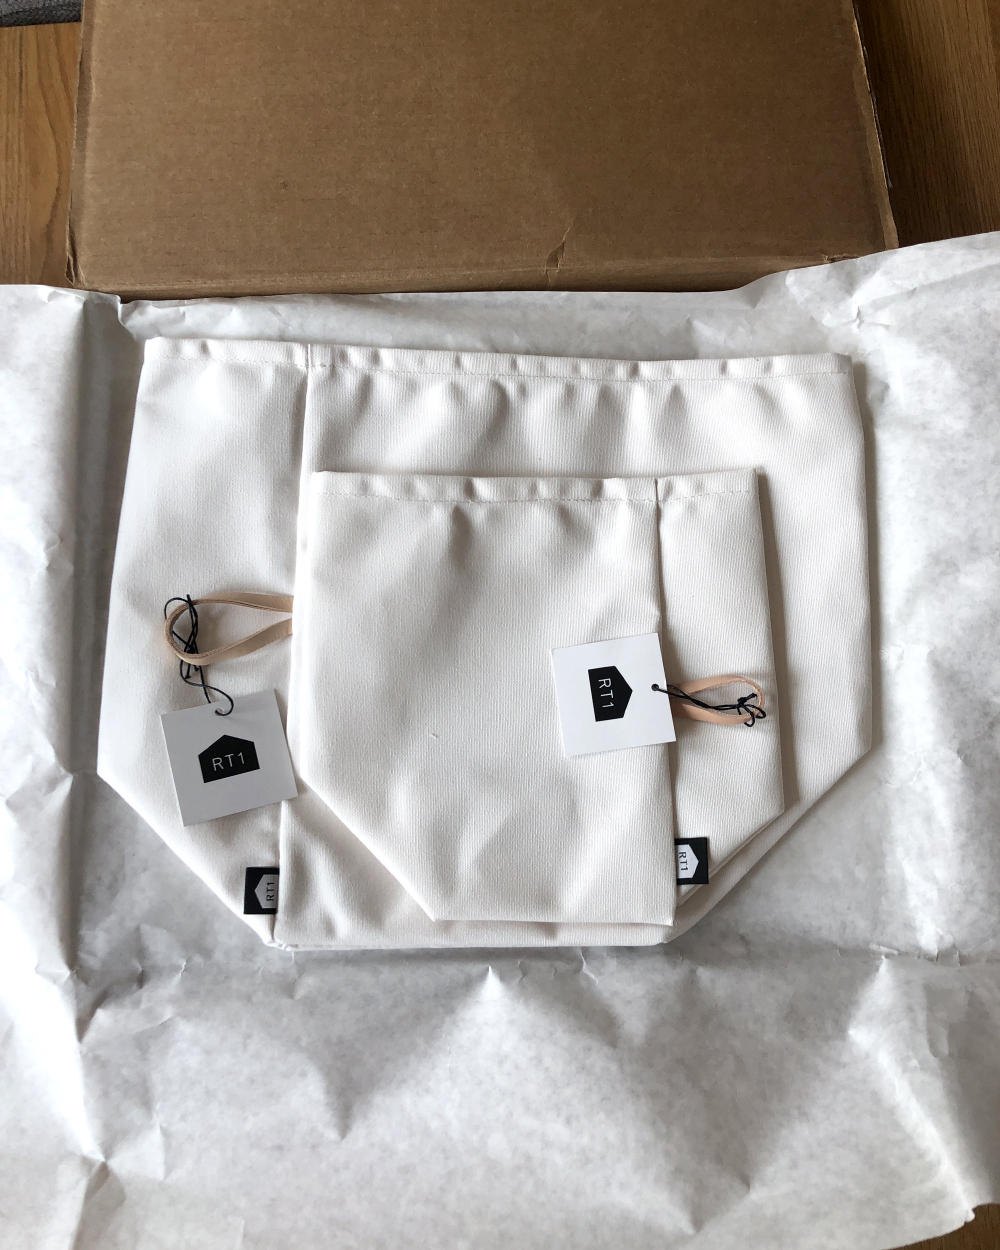 Everything was mailed efficiently with minimal packaging